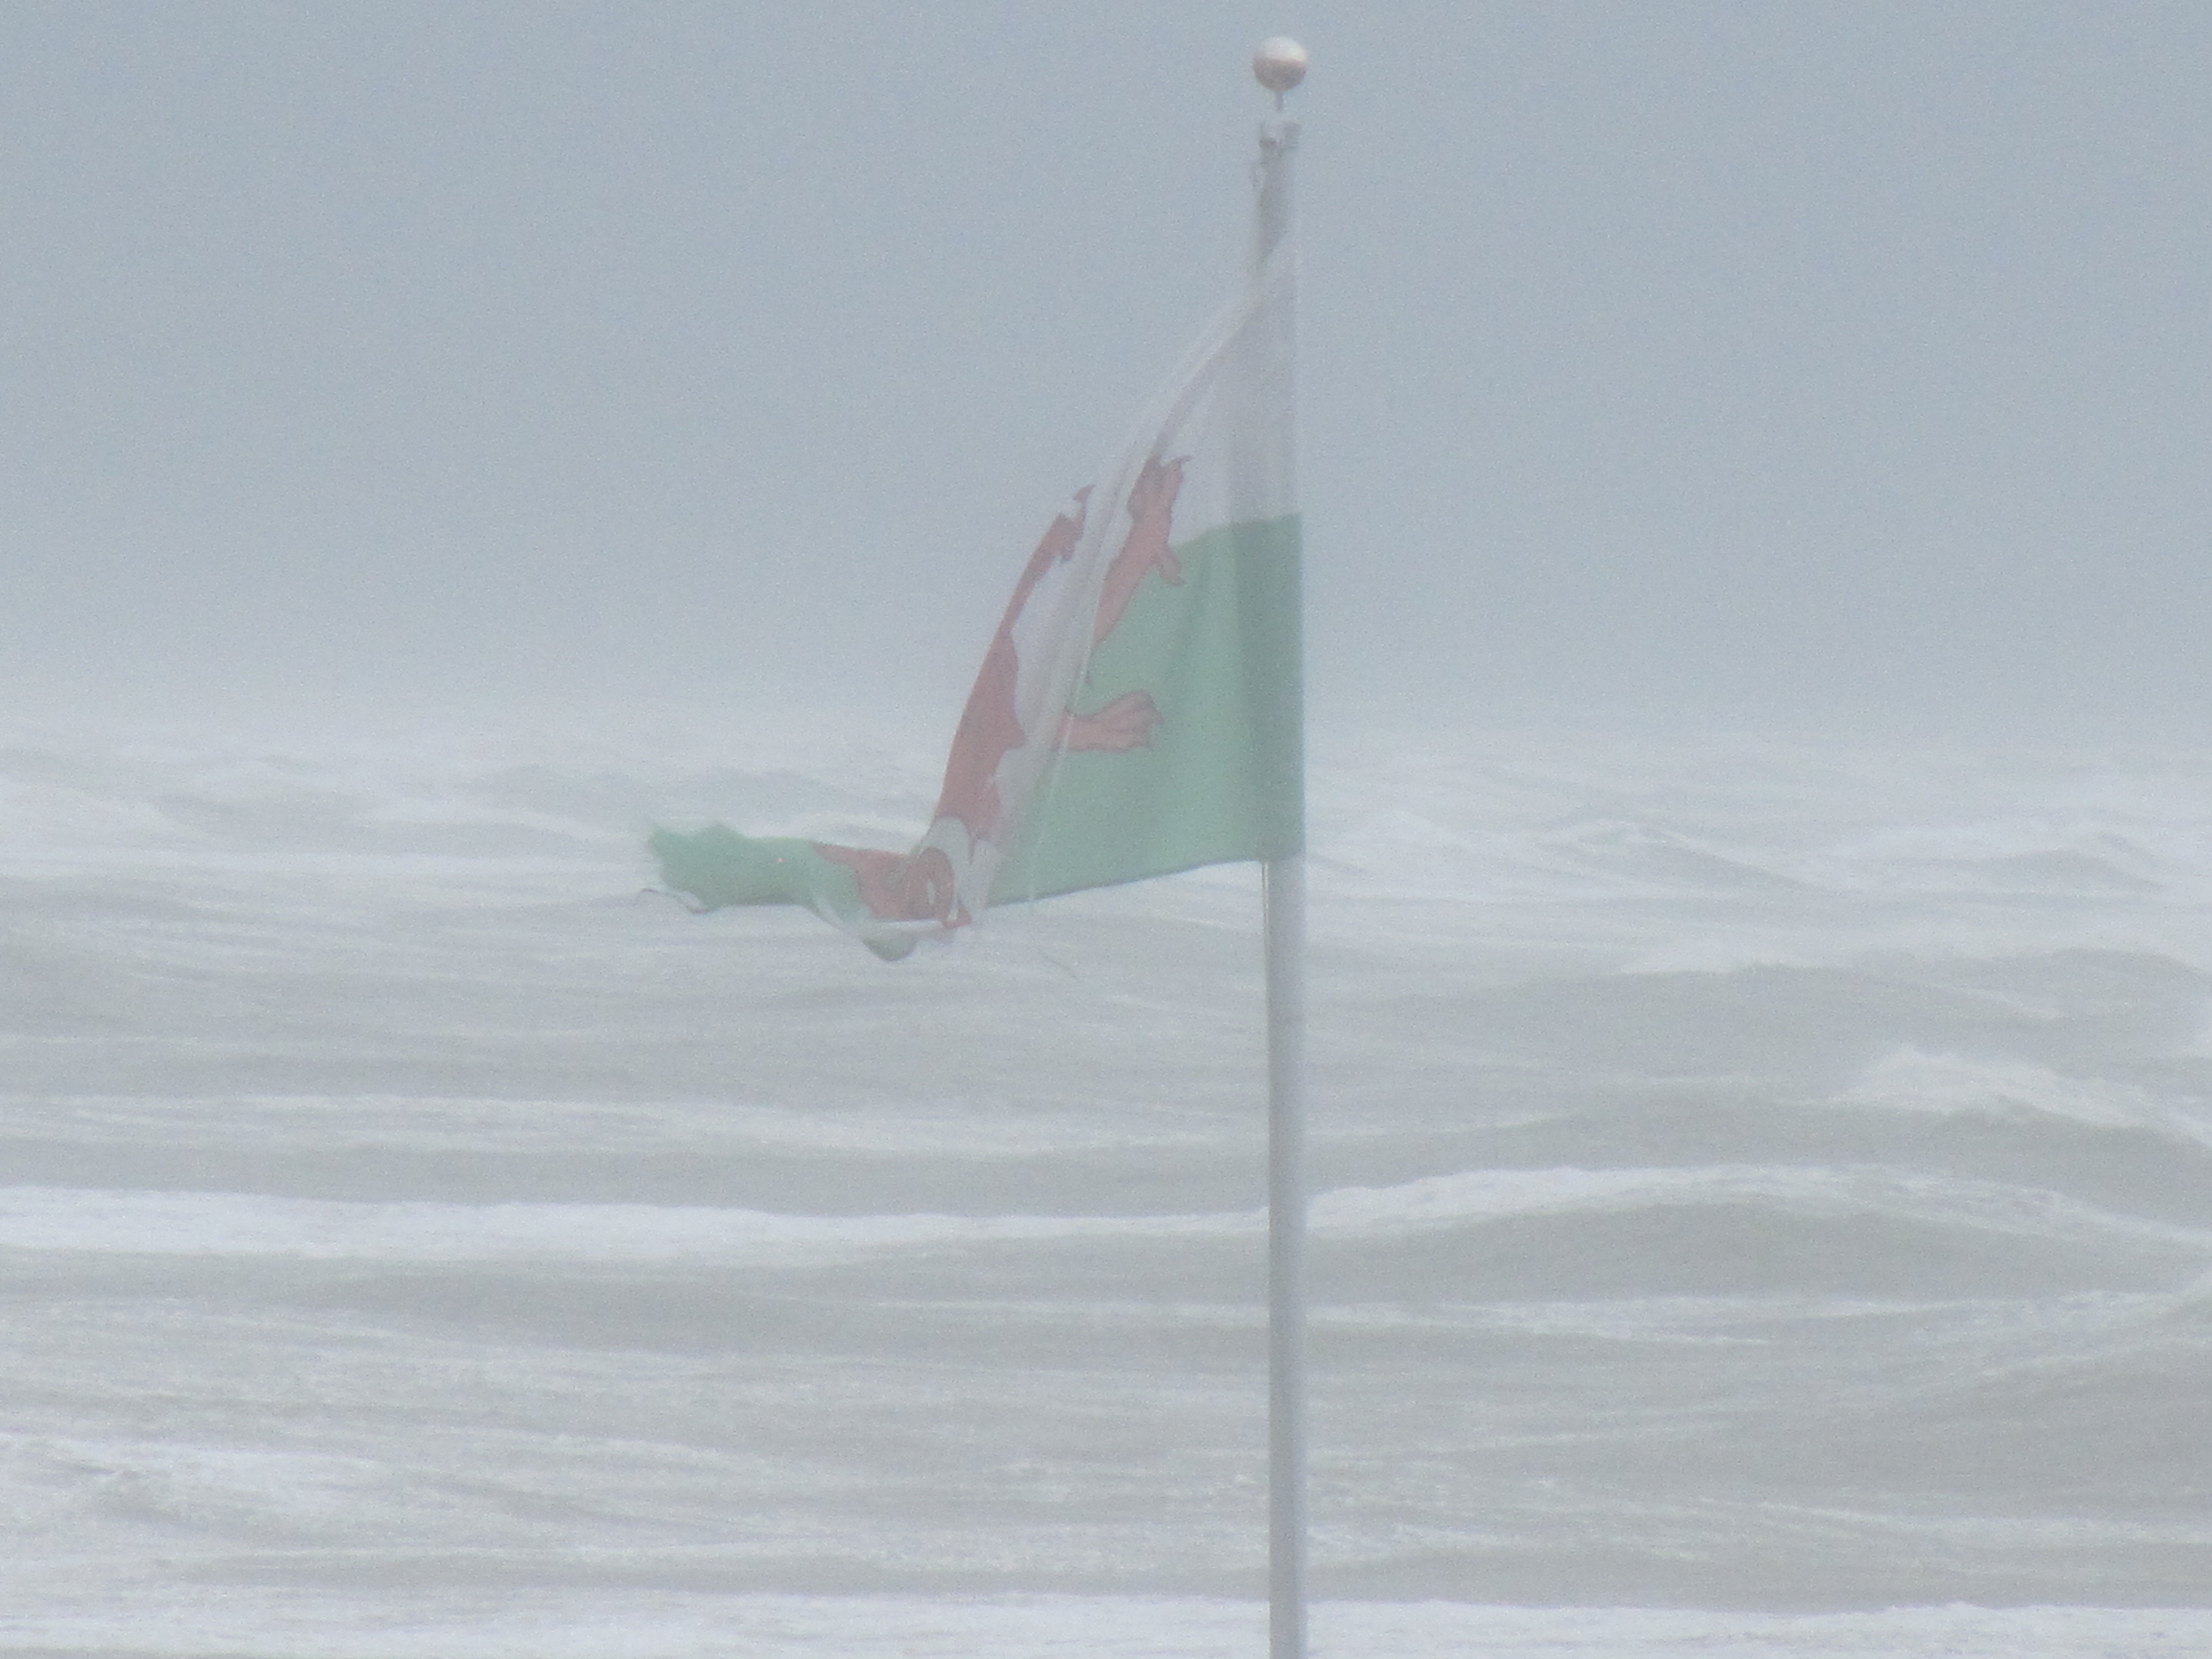 Wales in a storm